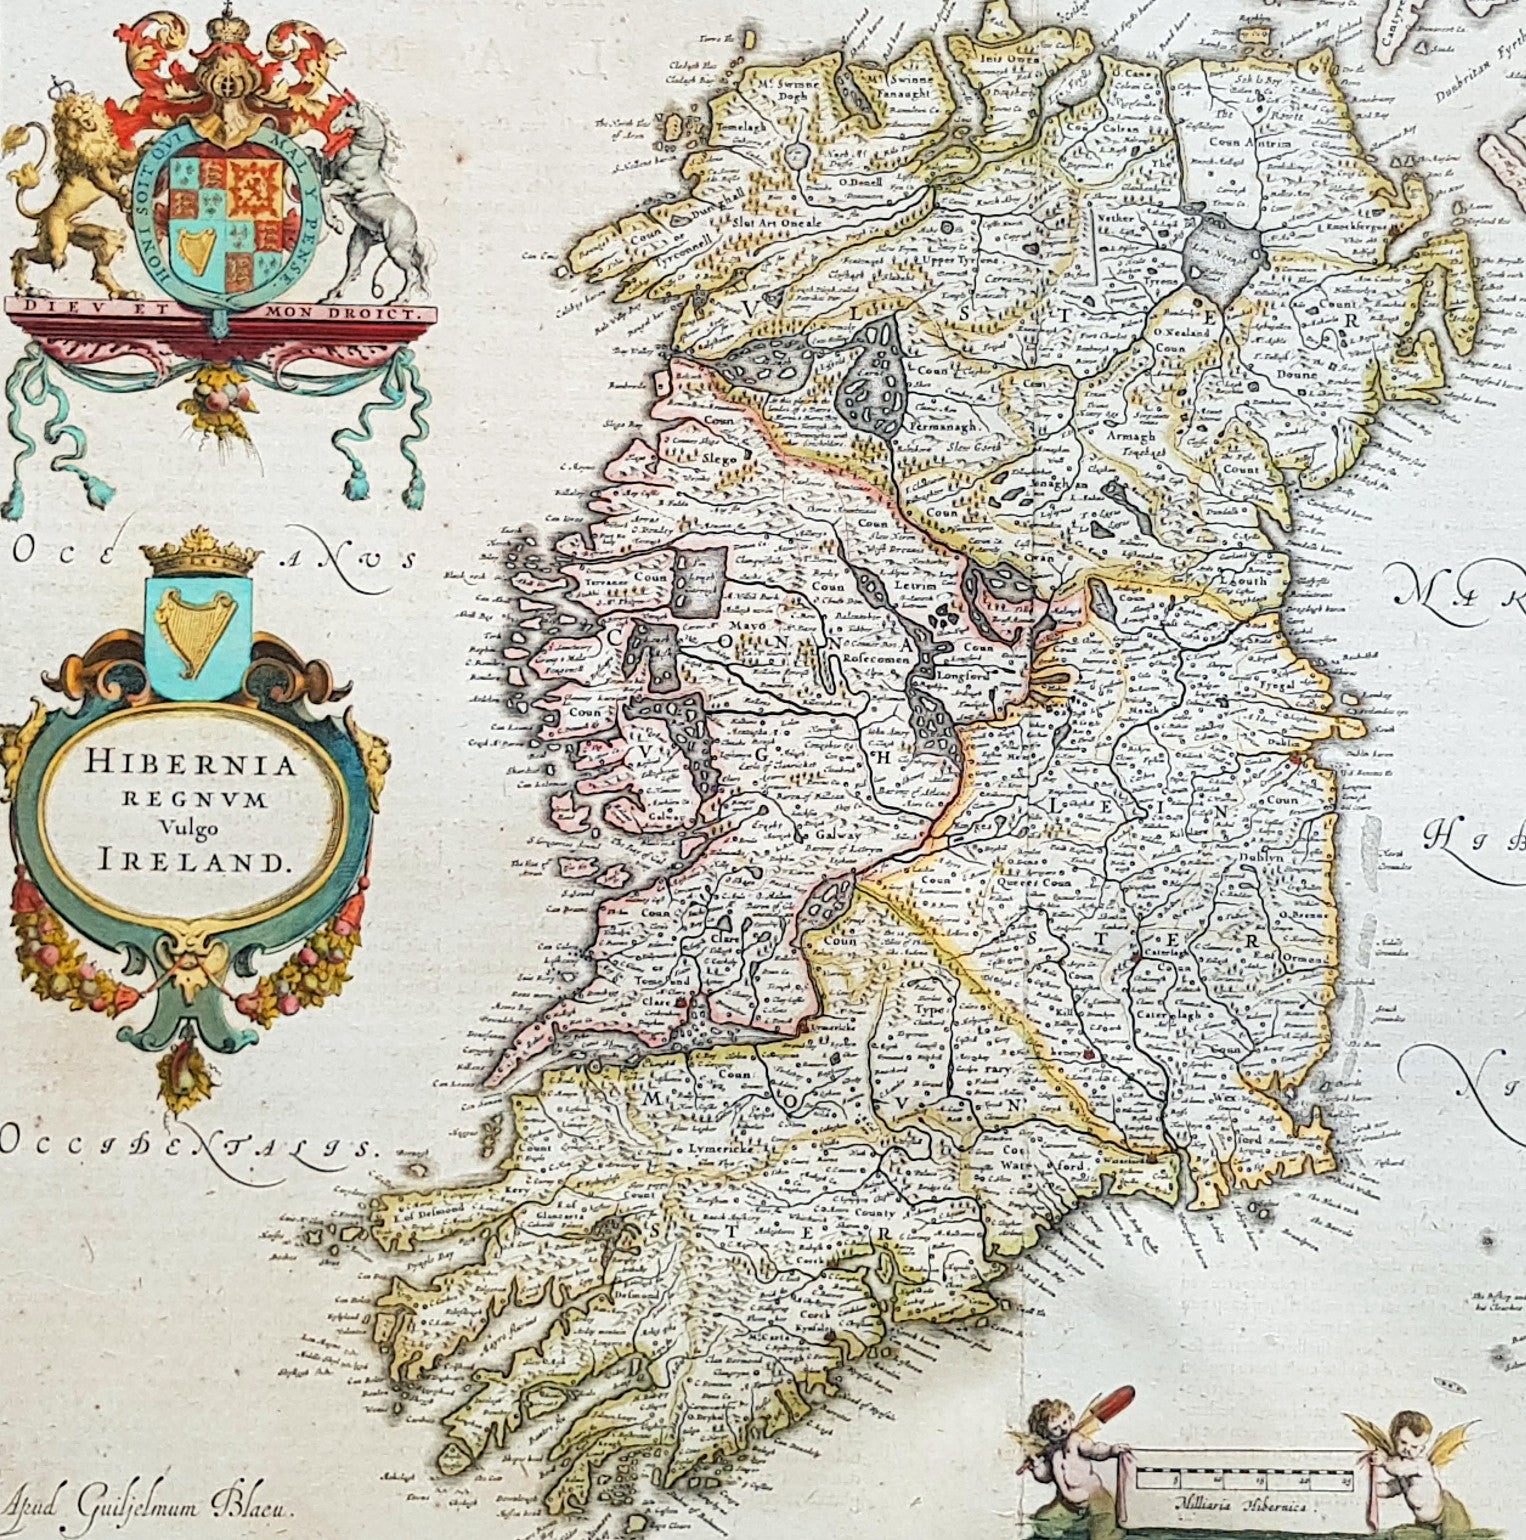 Large Map Of Ireland.1642 Blaeu Large Old Antique Map Of Ireland Hibernia Regnum